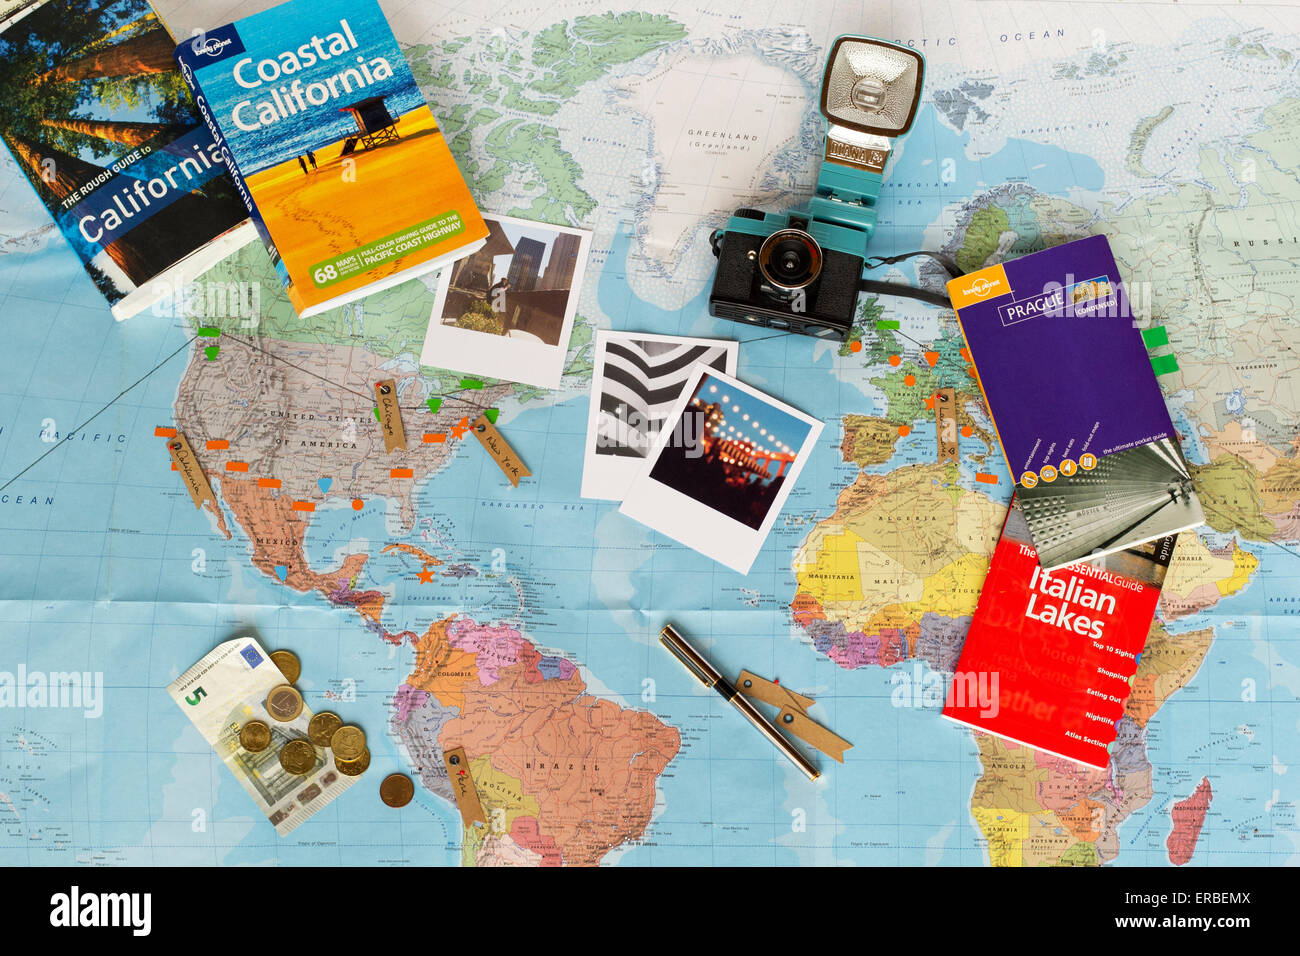 Travel planning. Map of the world, guide books, currency, photographs. - Stock Image